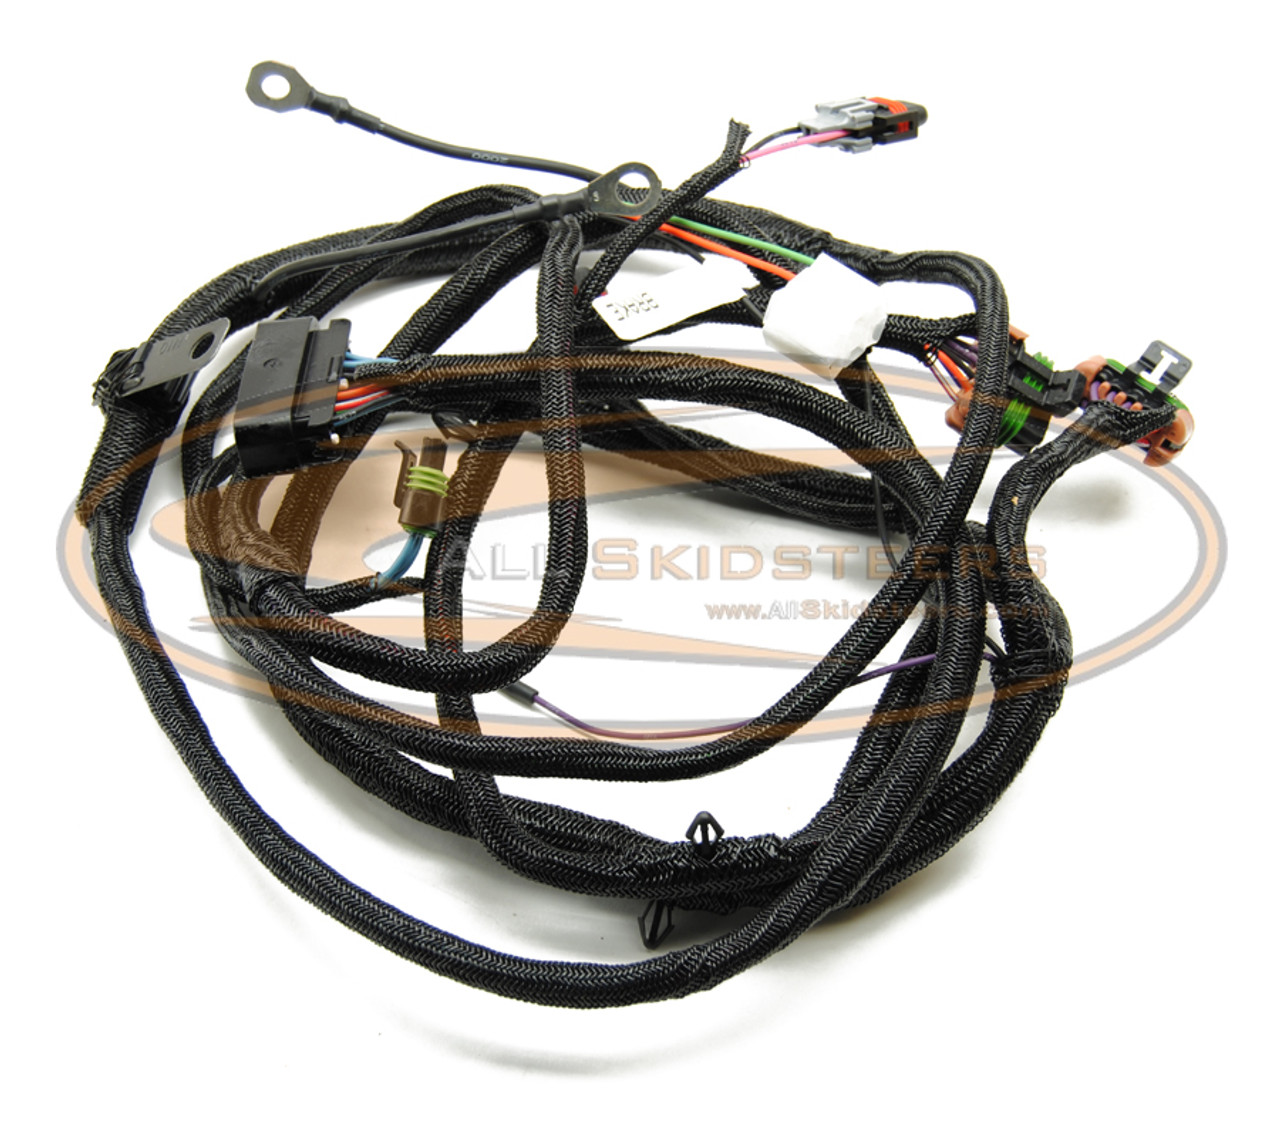 cab wiring harness standard for bobcat skid steer replacescab wiring harness standard [ 1280 x 1122 Pixel ]